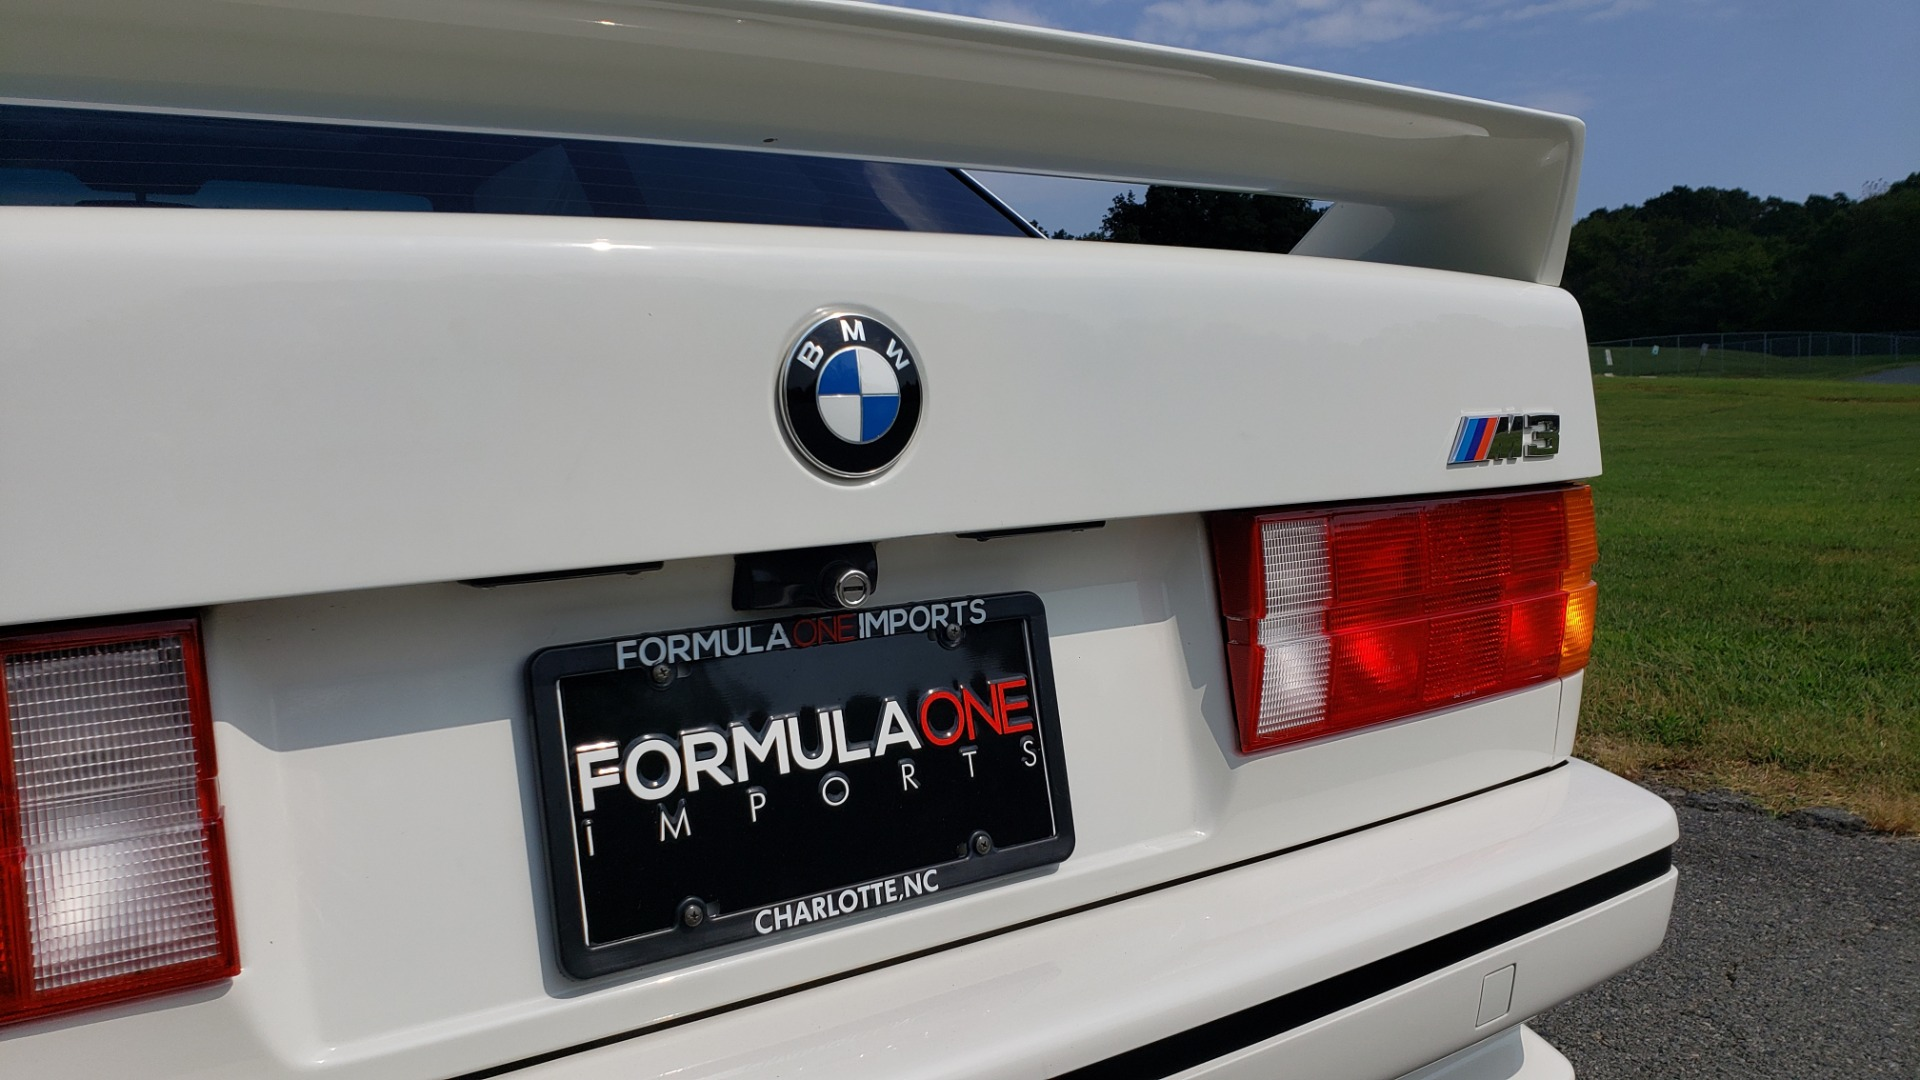 Used 1989 BMW M3 COUPE 2DR / 5-SPEED MAN / LOW MILES / SUPER CLEAN for sale Sold at Formula Imports in Charlotte NC 28227 32